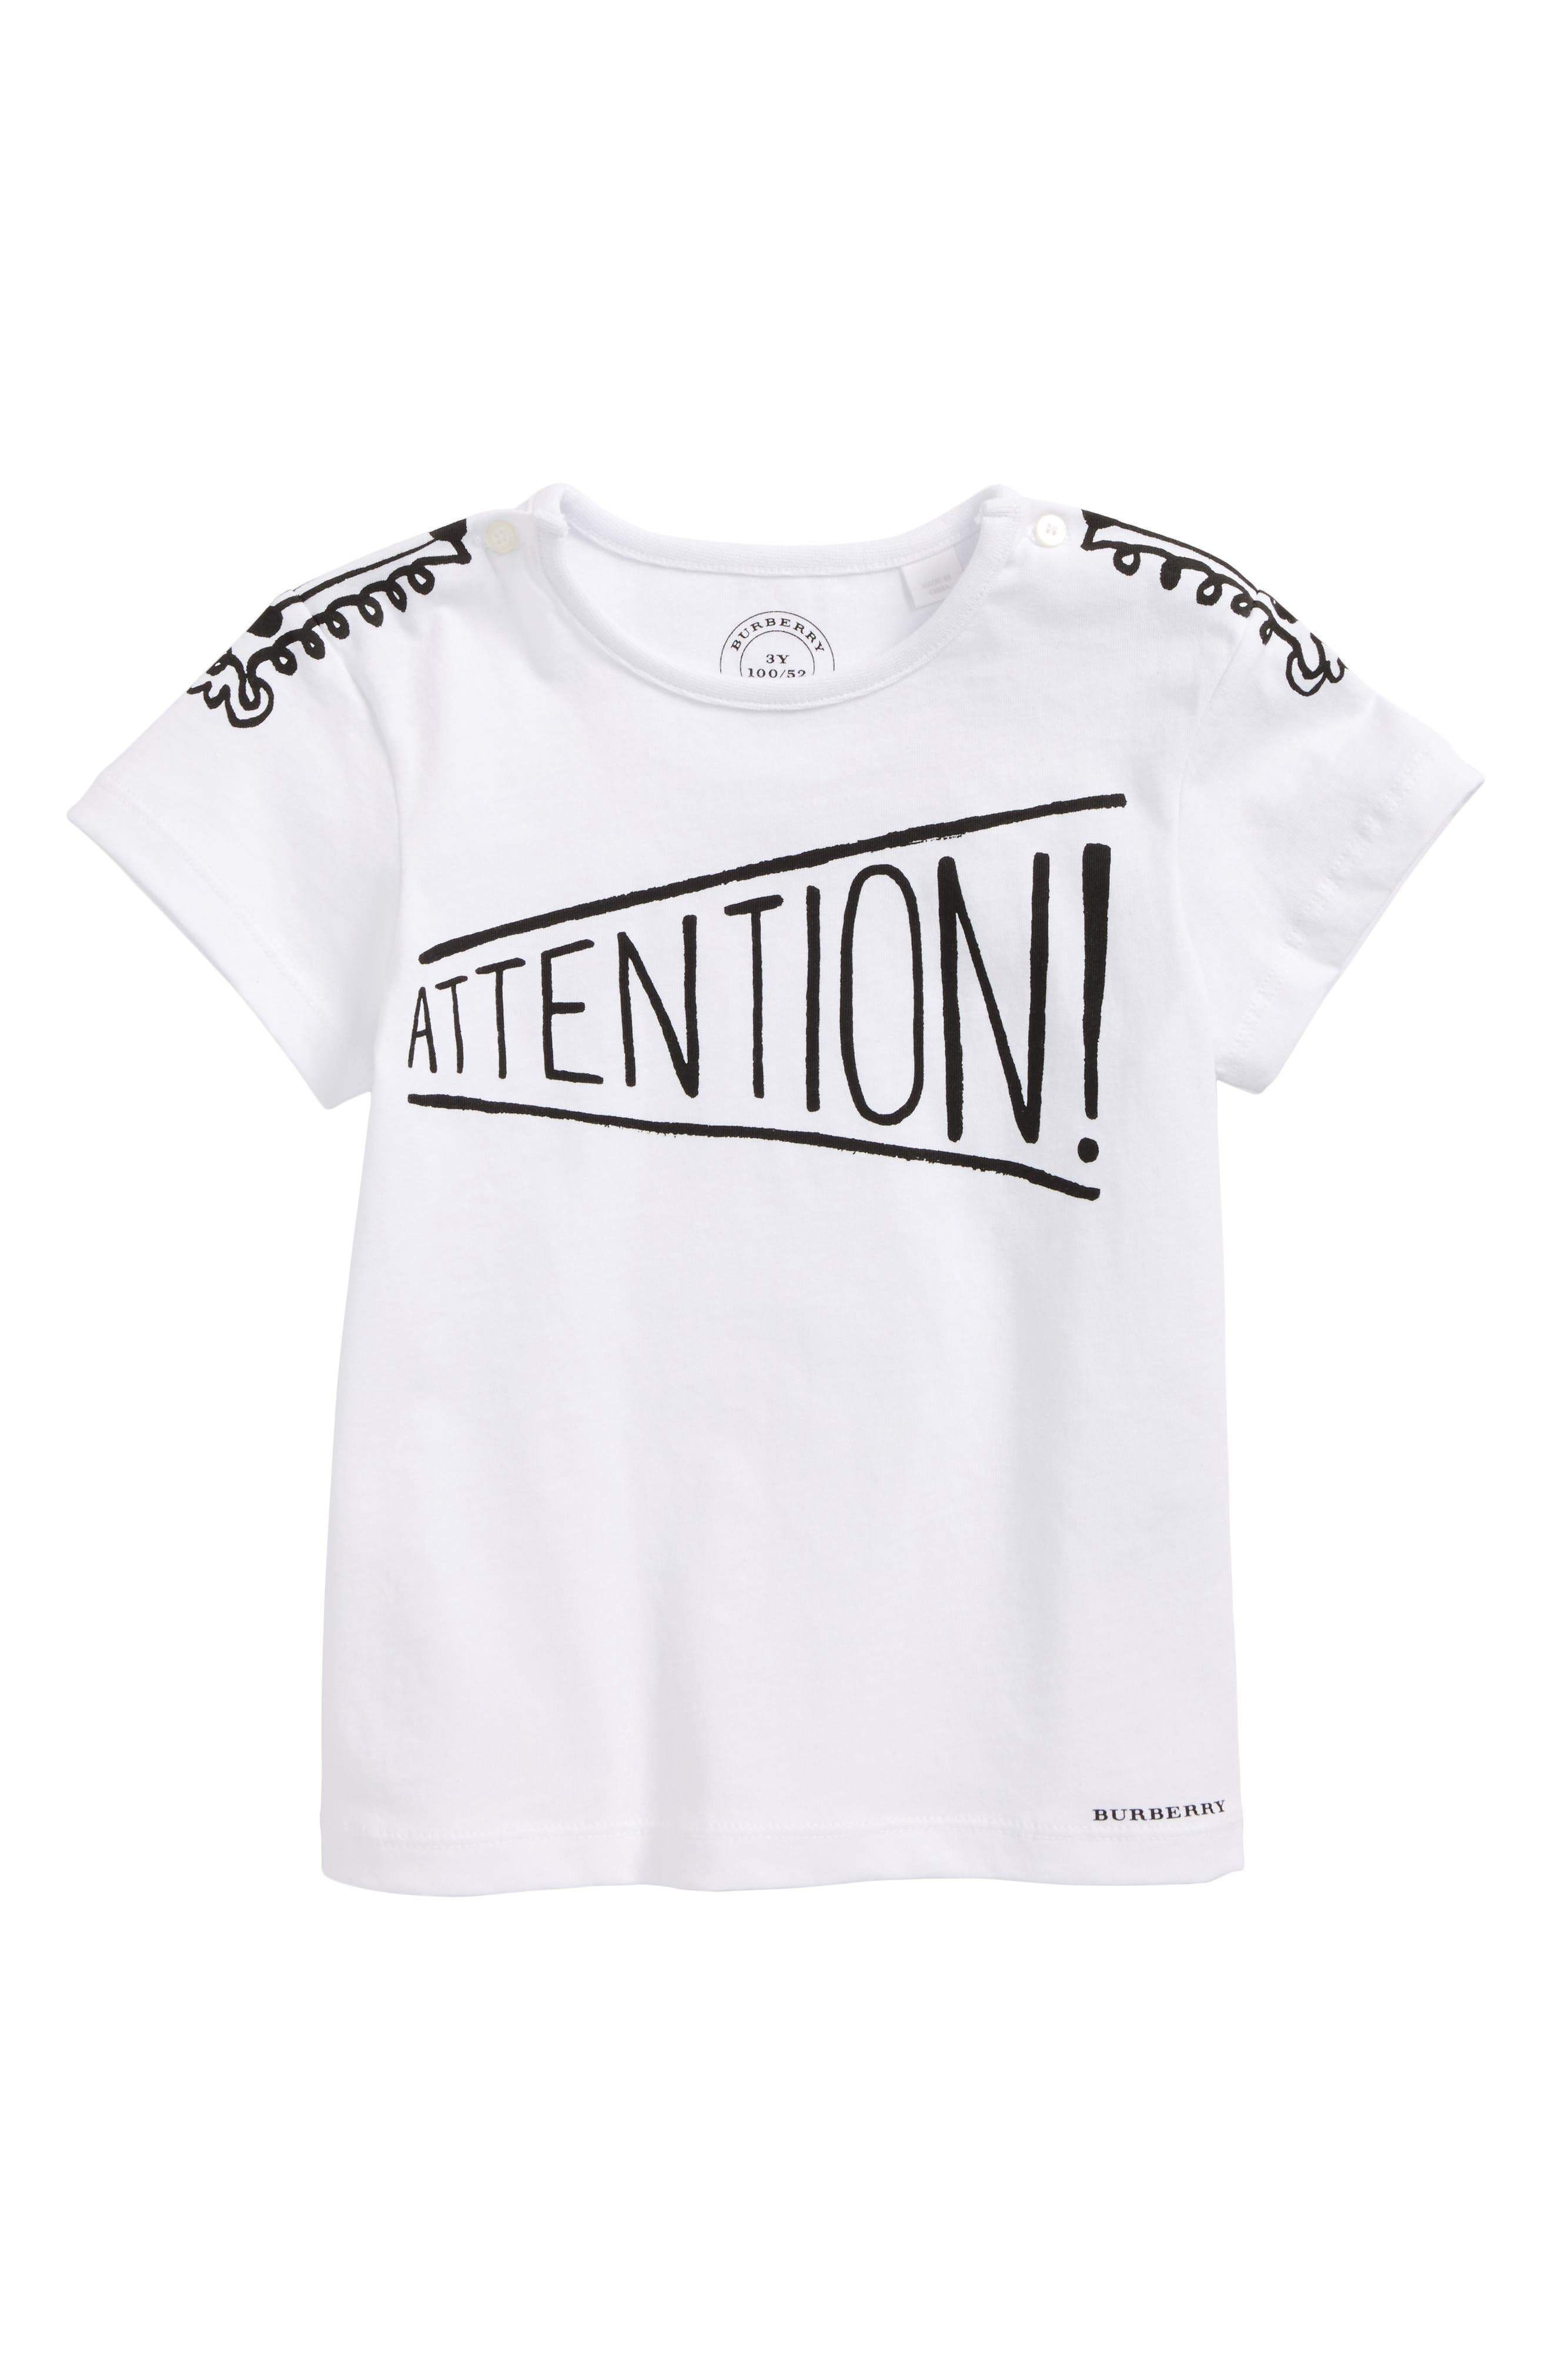 Main Image - Burberry Attention T-Shirt (Toddler Boys)